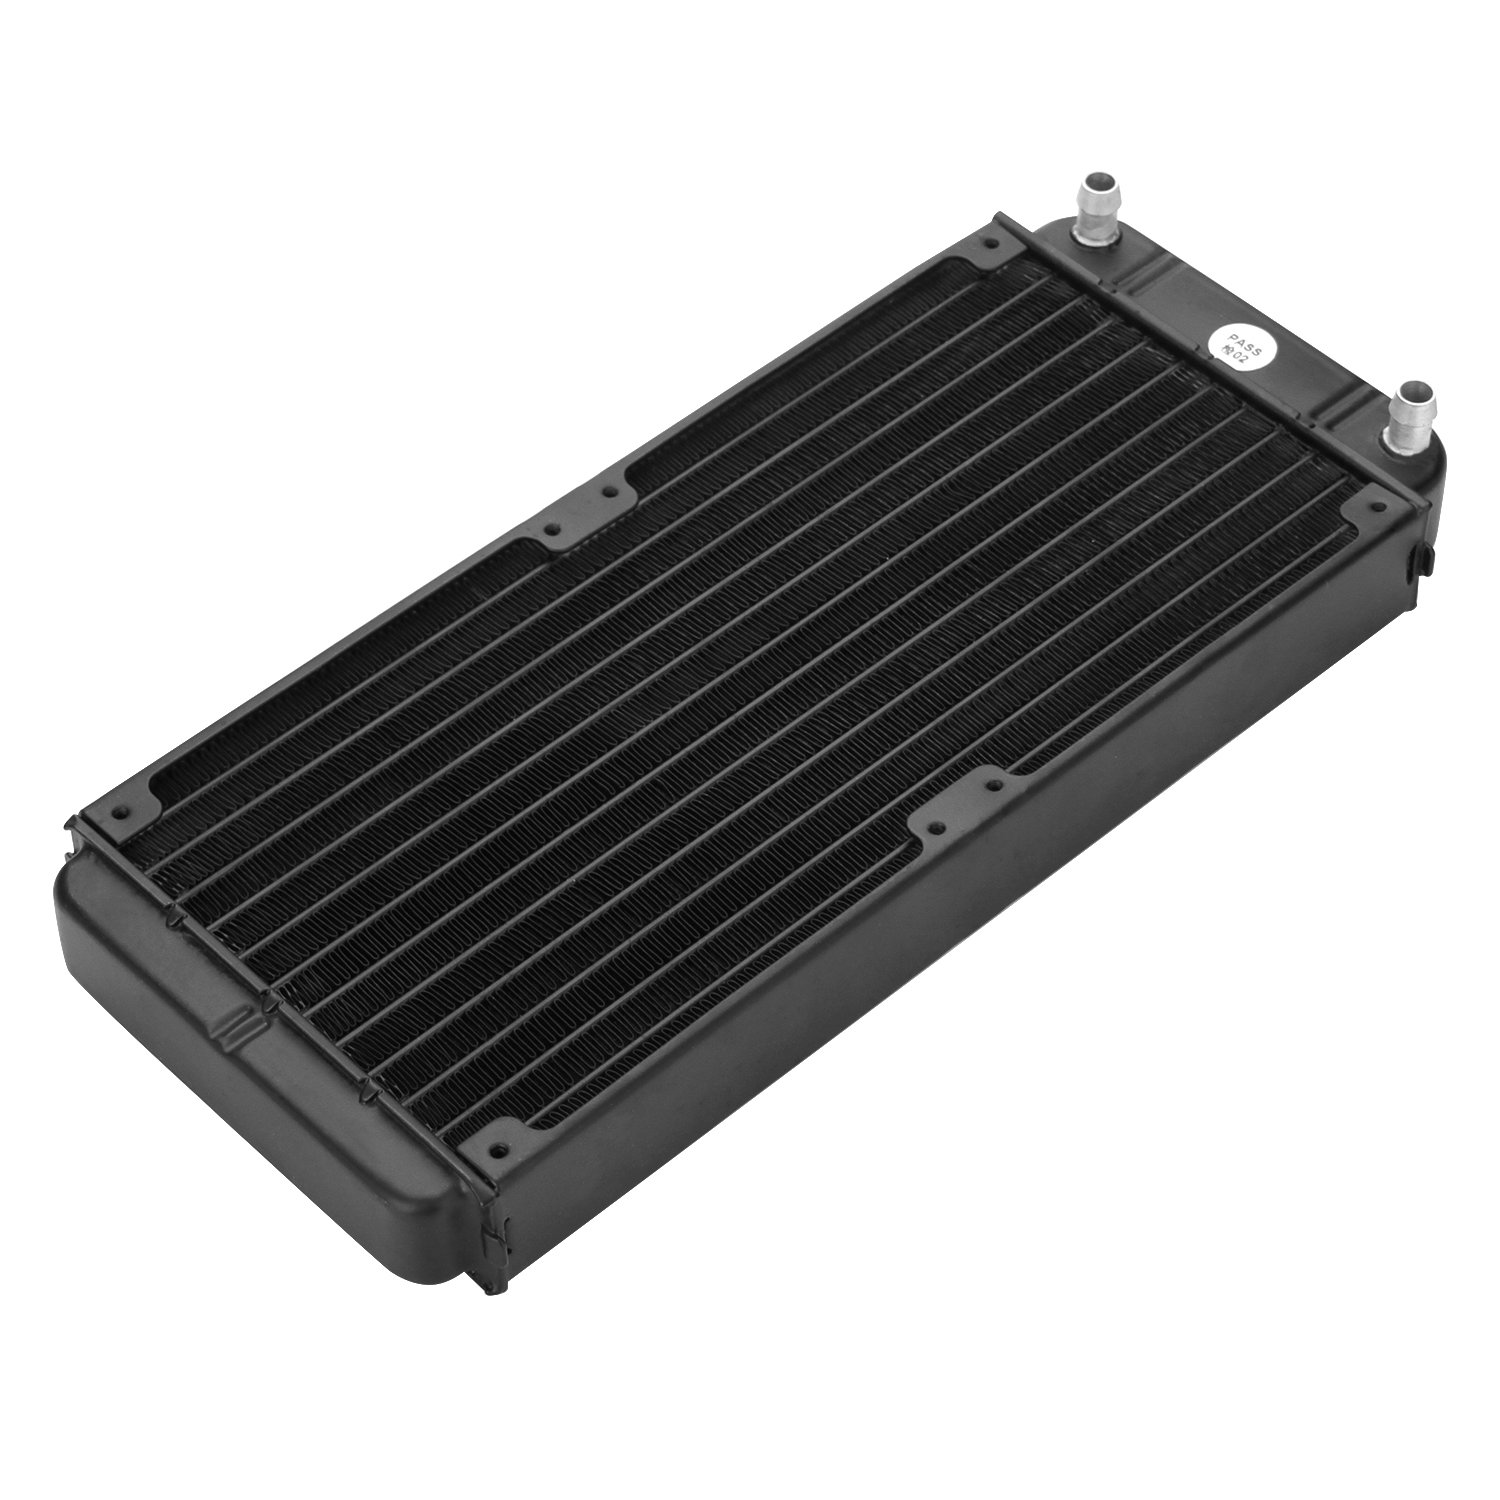 FITNATE 12 Pipe Aluminum Heat Exchanger Radiator for PC CPU CO2 Laser Water Cool System Computer R240, 10.62Inch by FITNATE